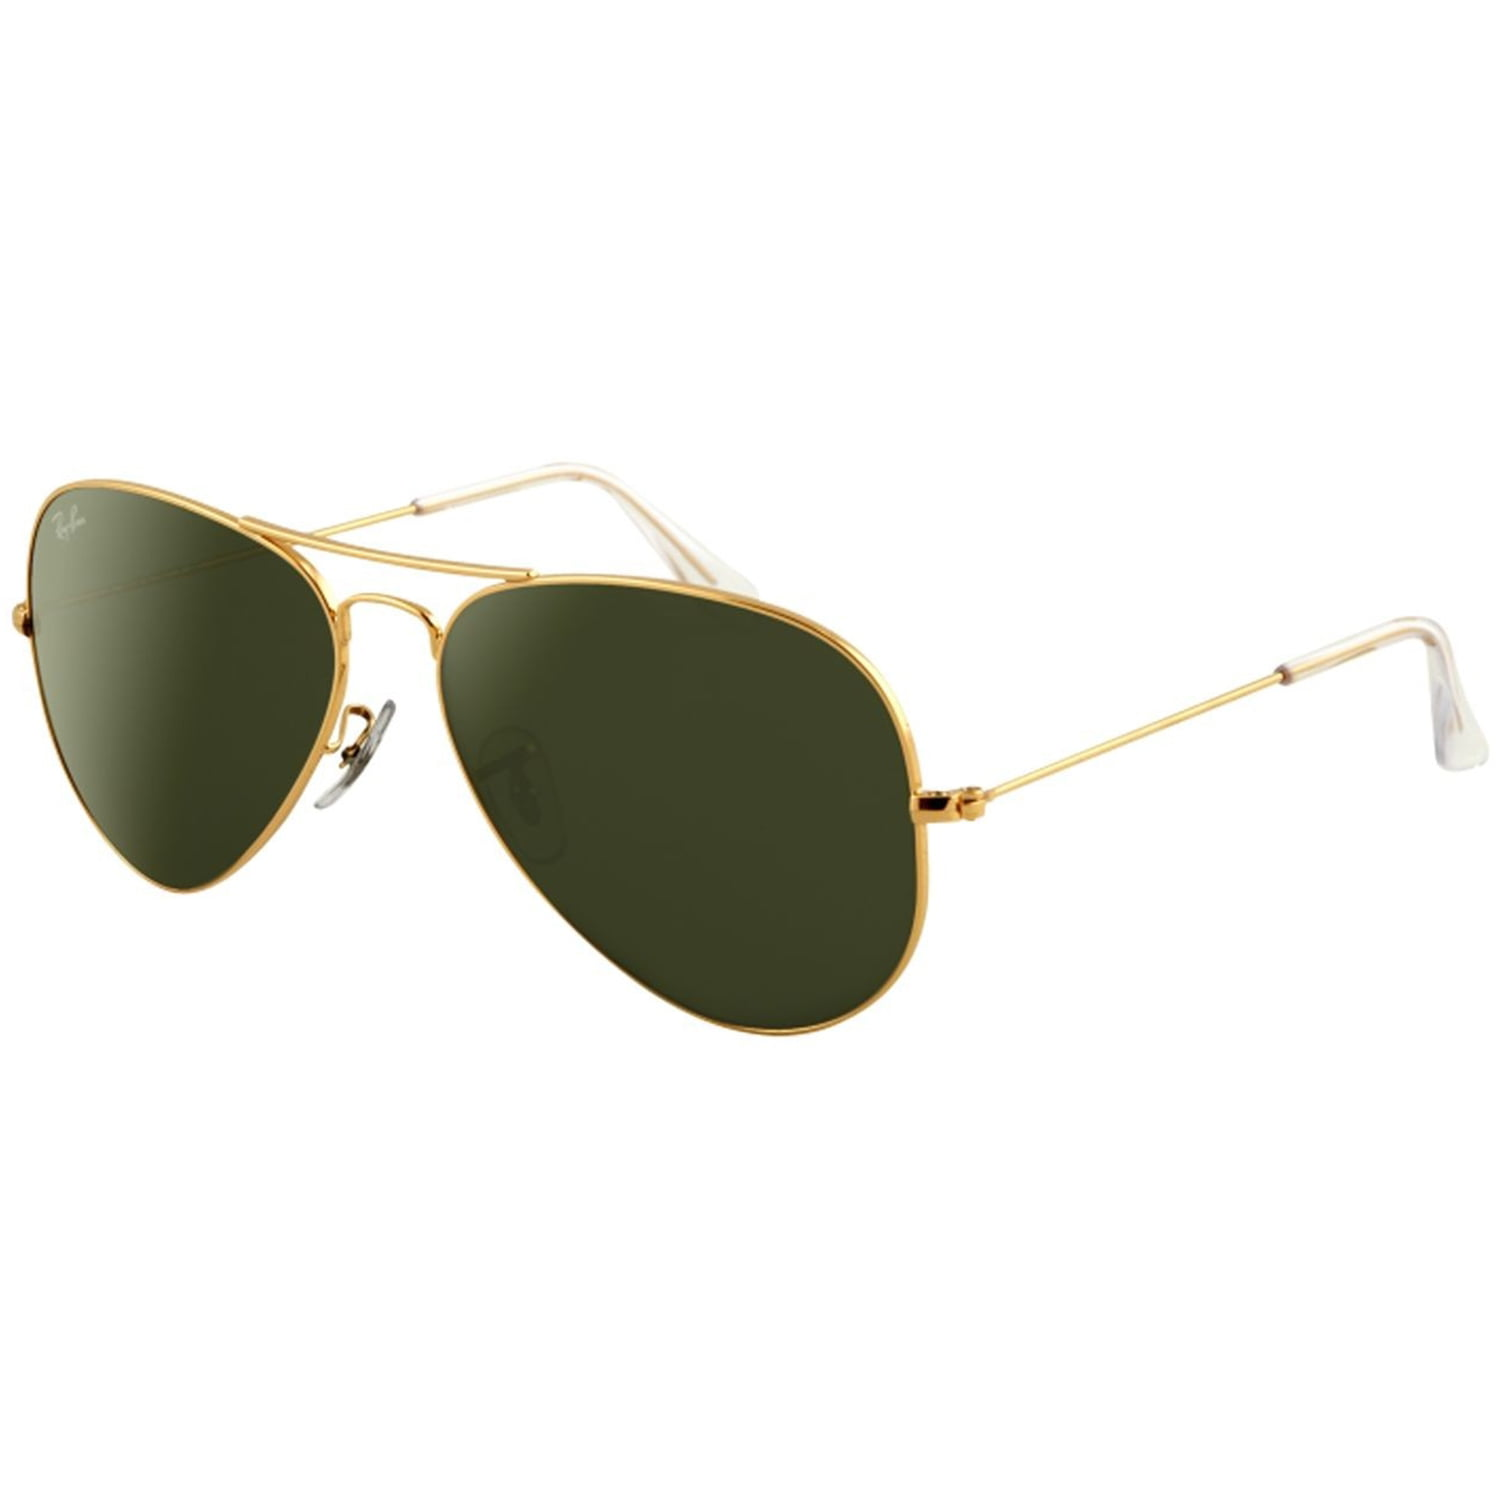 ray ban outlet usa reviews  ray ban men's aviator rb3025 l0205 58 gold aviator sunglasses